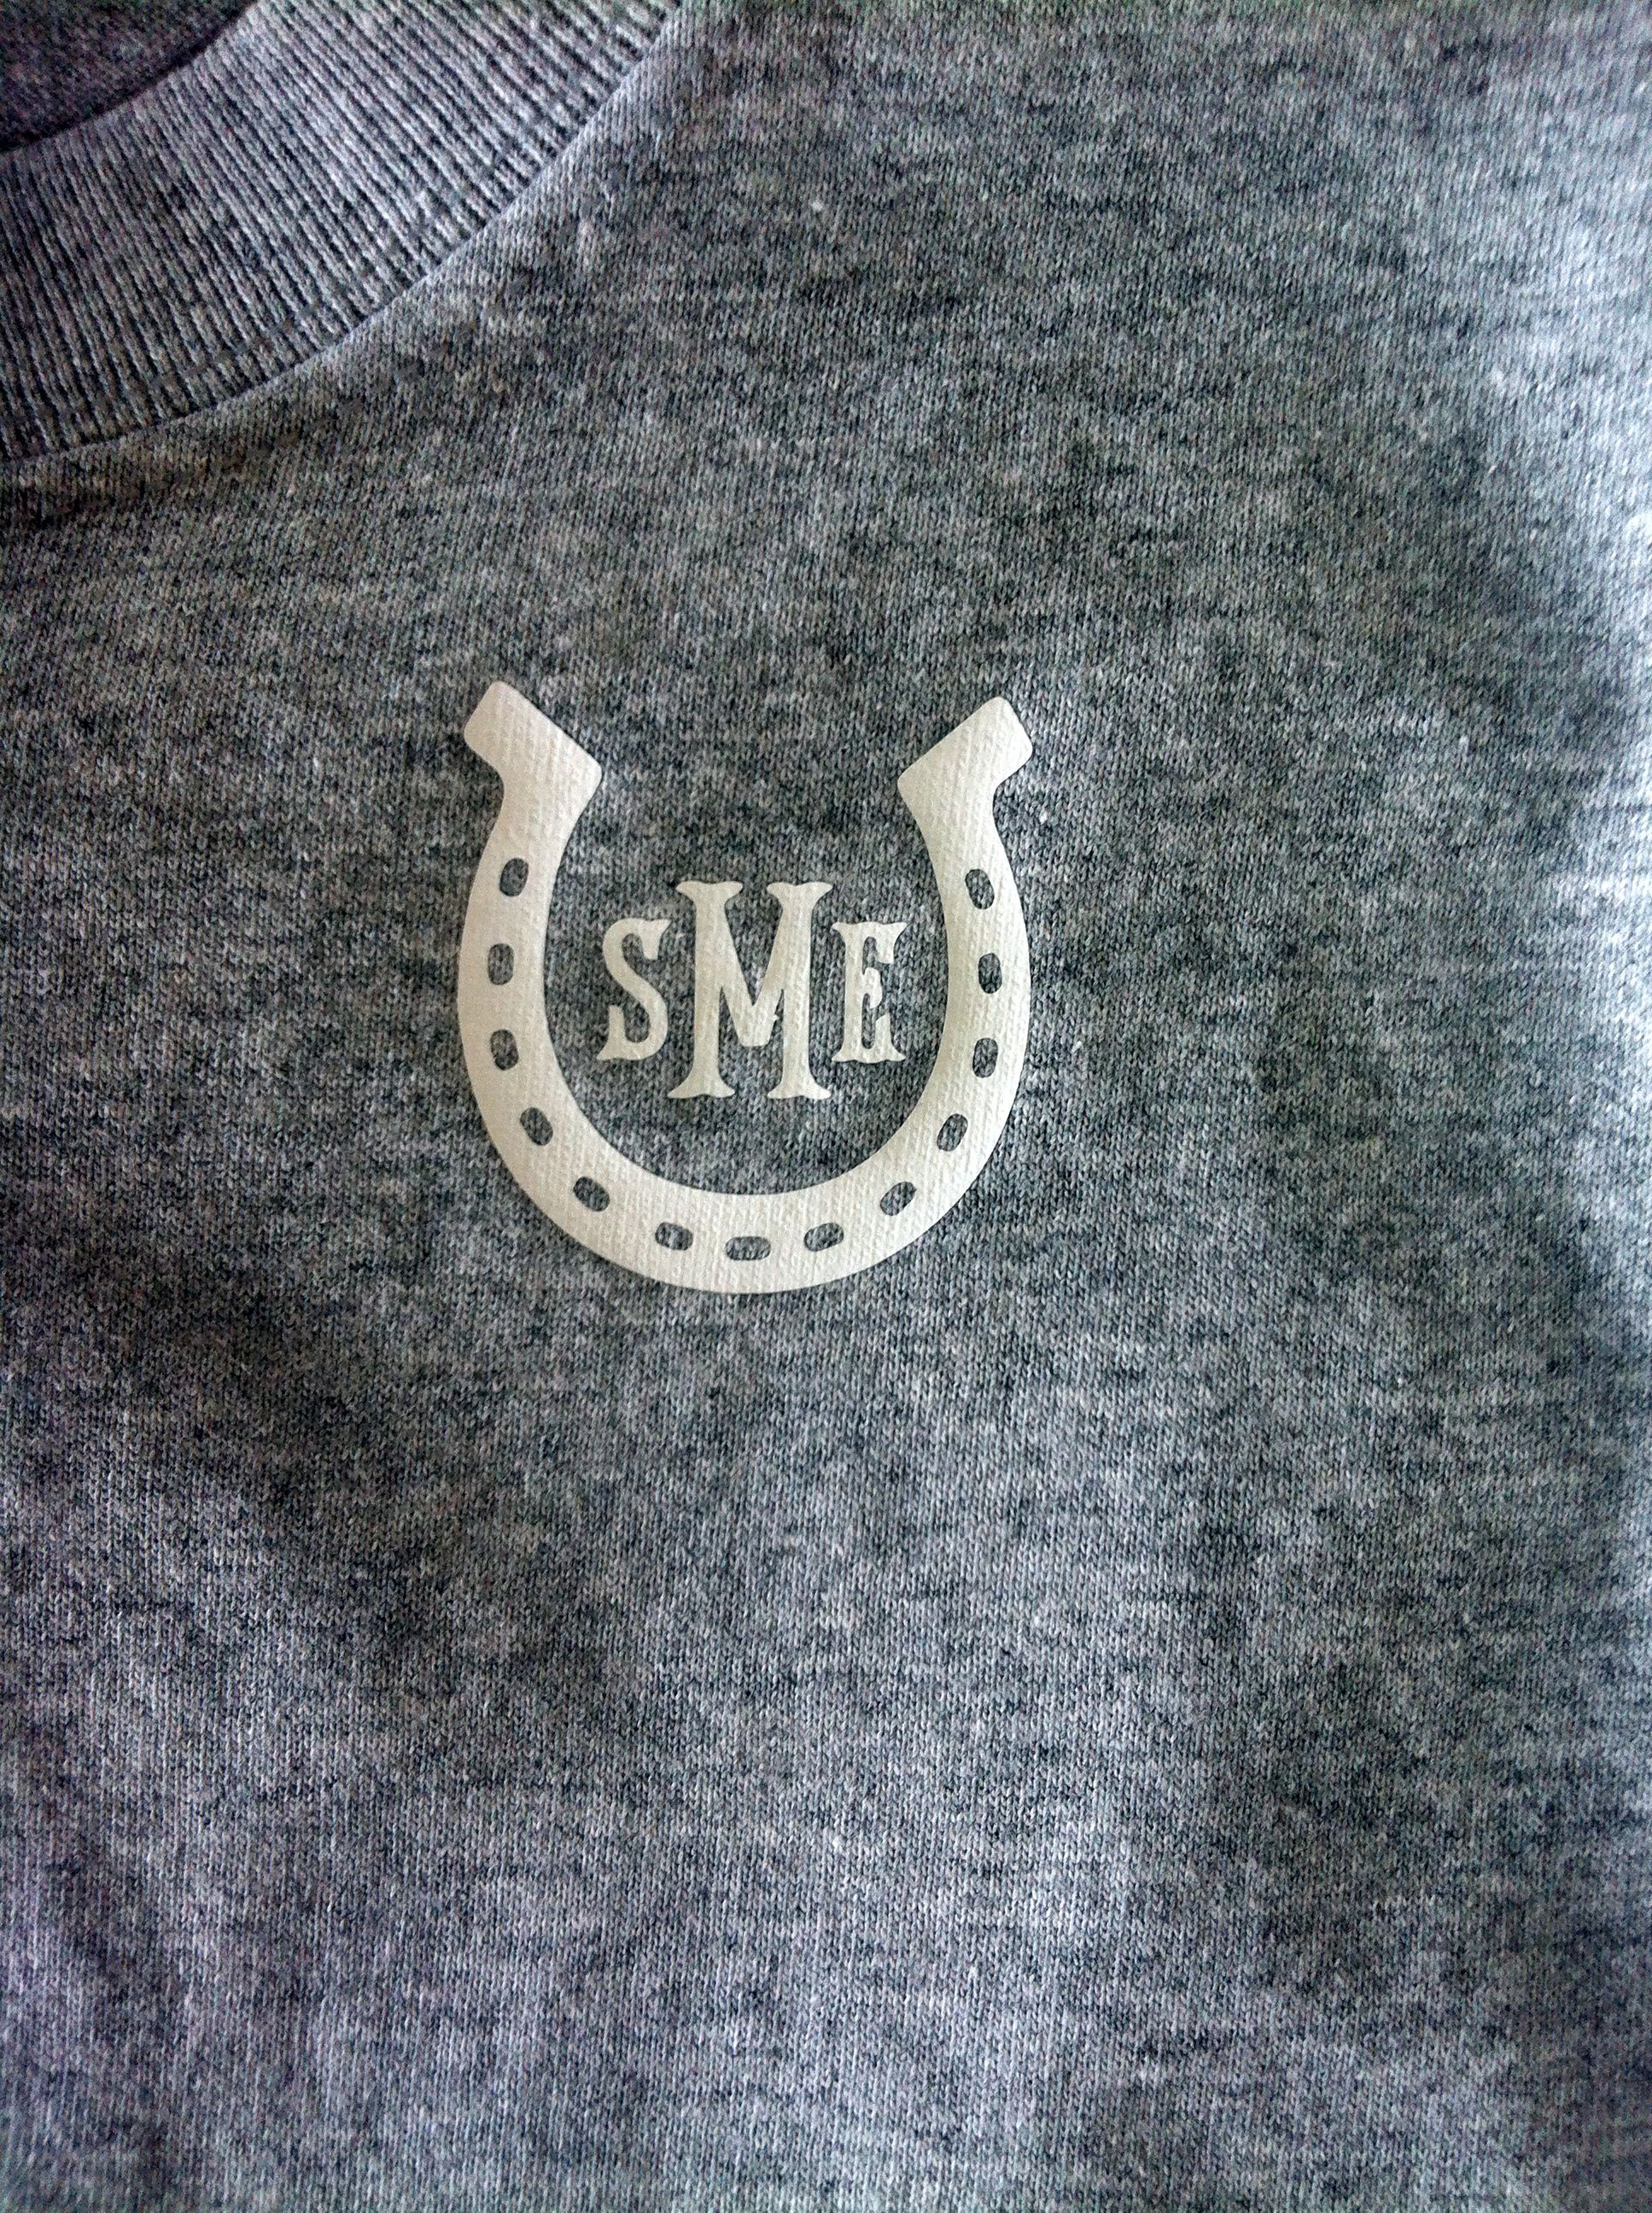 Heat Pressed Horseshoe Monogram Monograms Duck Logo